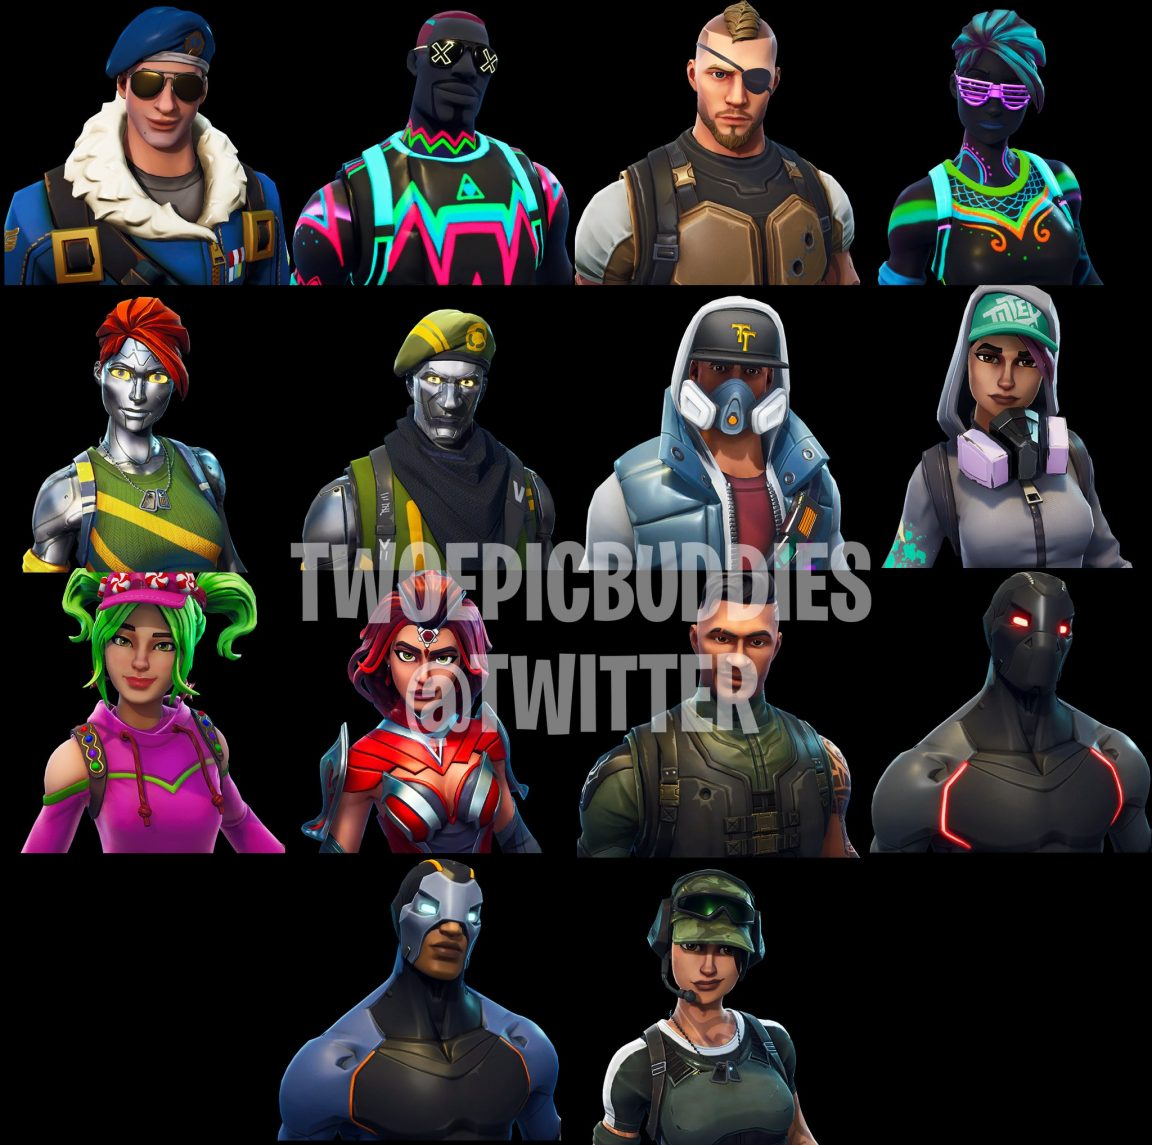 Fortnite Leaked Skins Back Bling And Axes Reveal More New